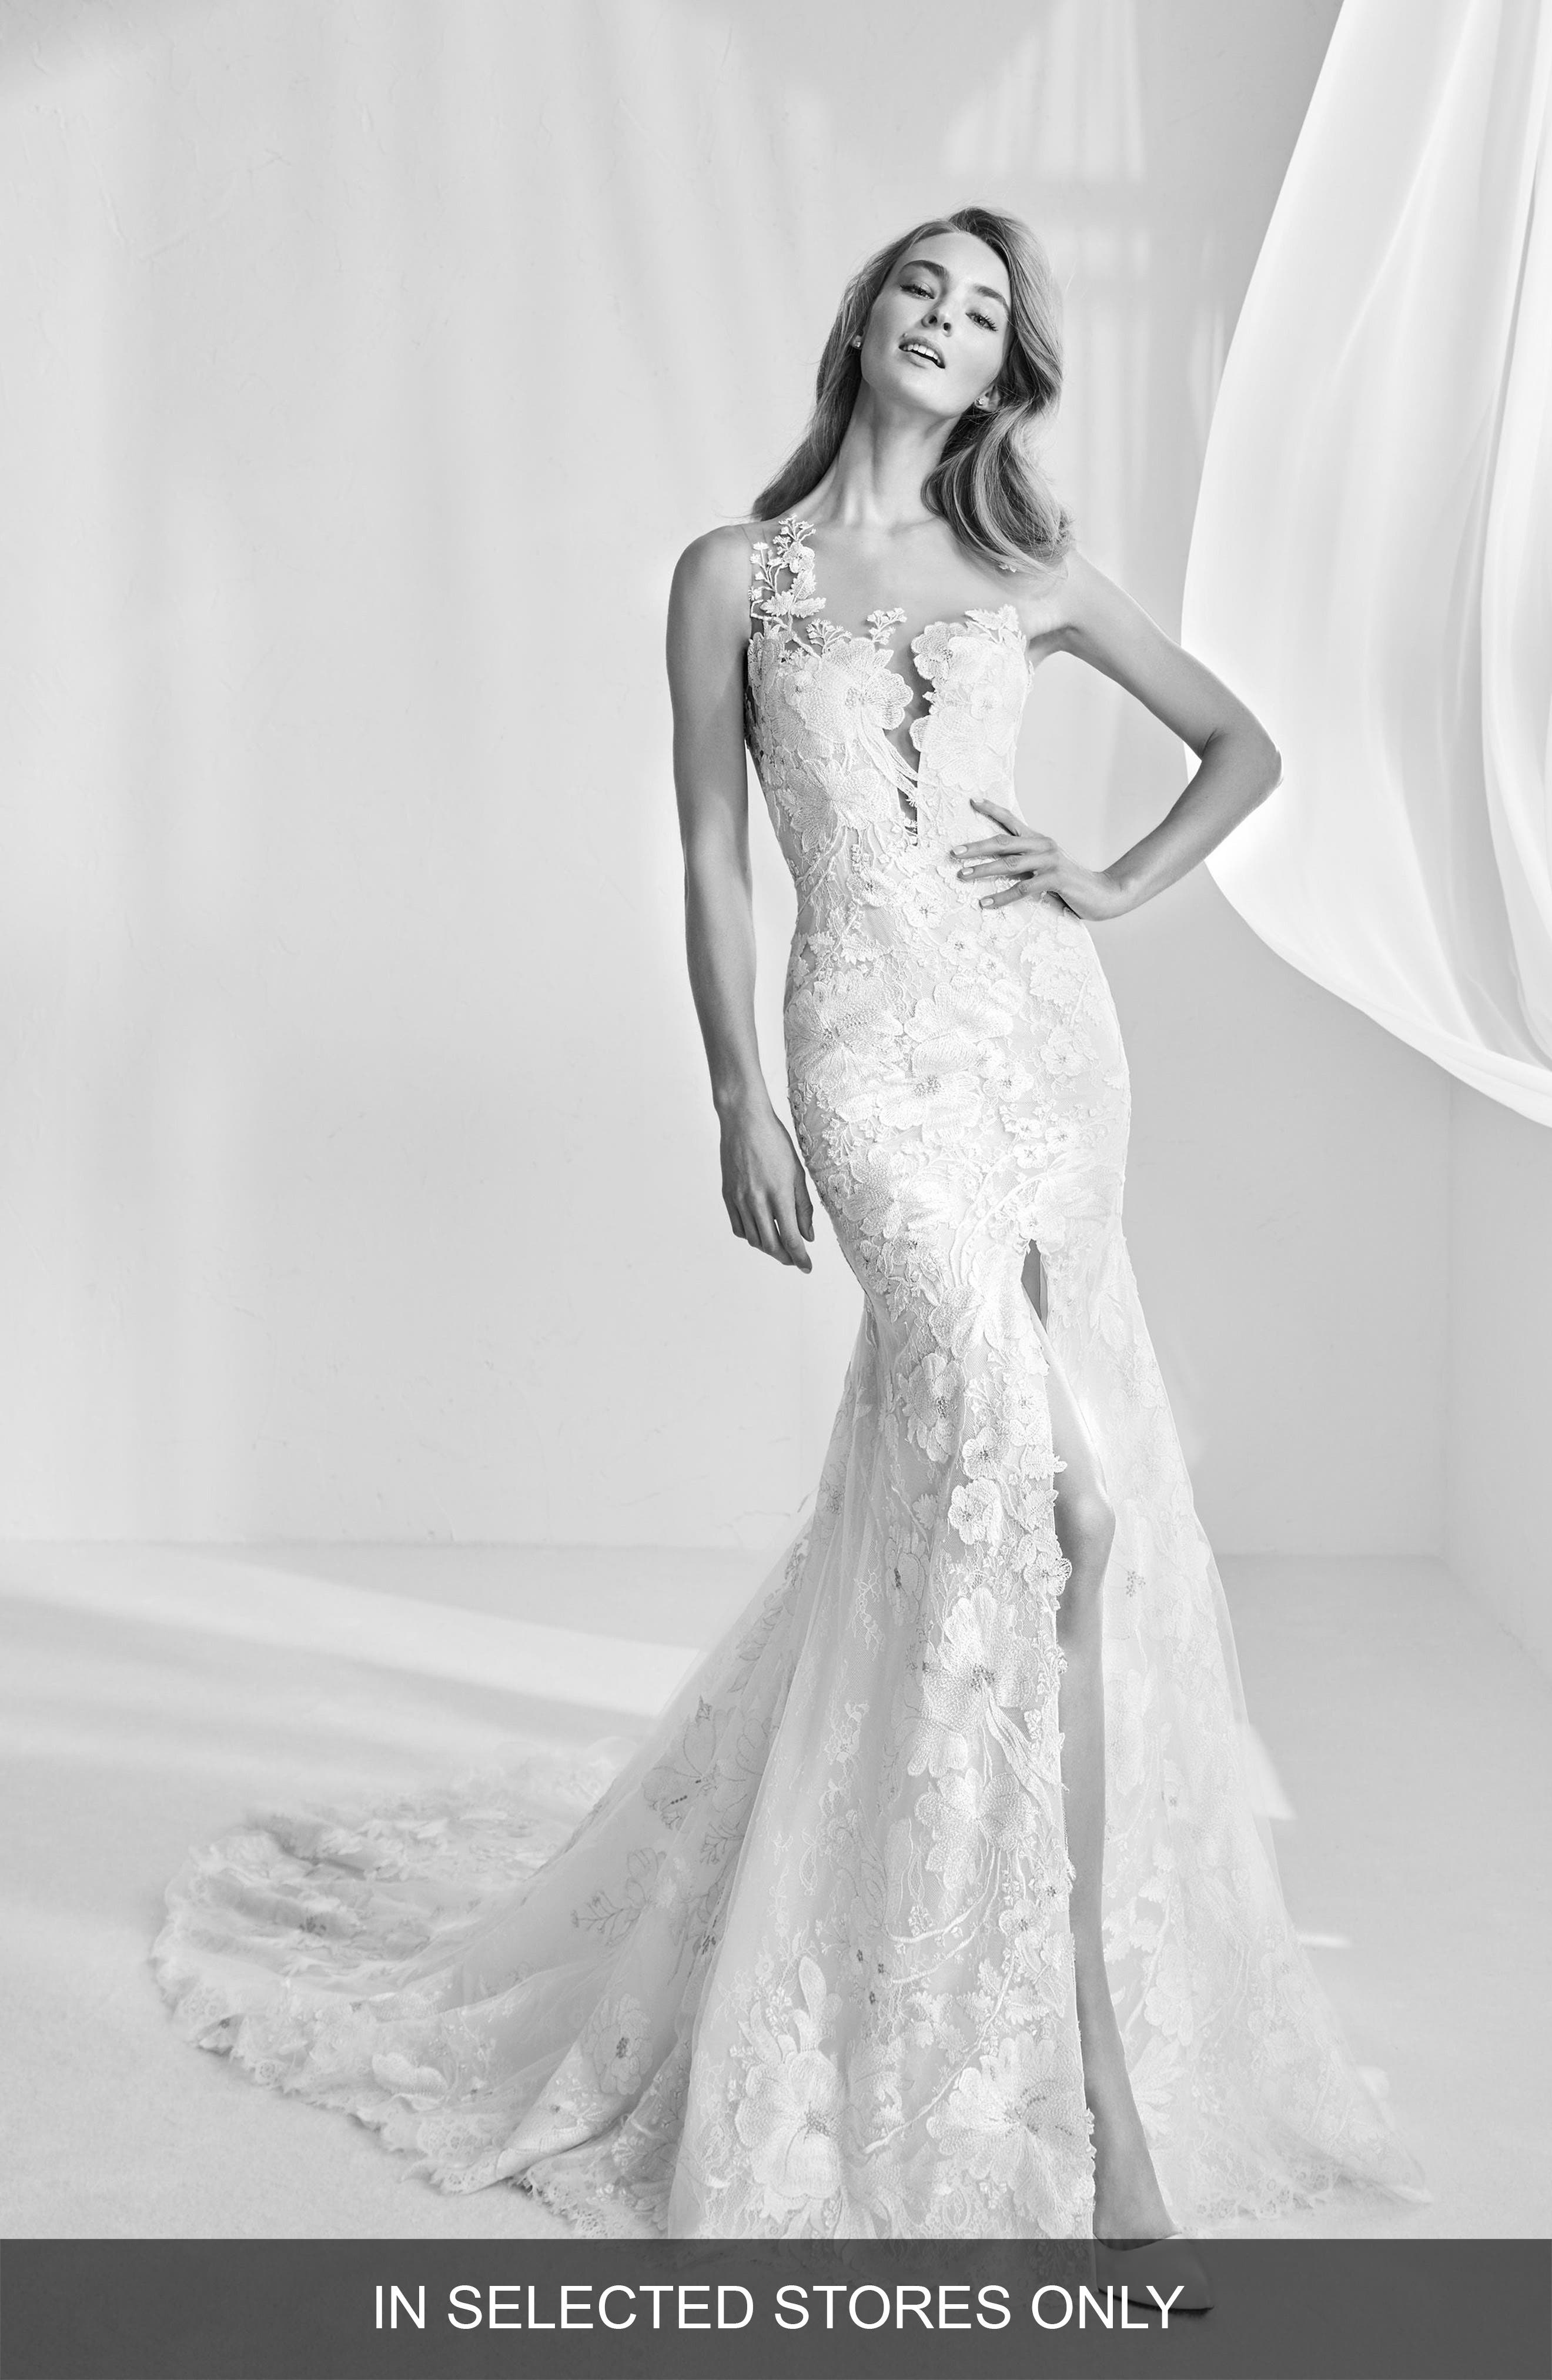 Ranisa Embroidered Lace Mermaid Gown,                         Main,                         color, Off Wh/ Crst